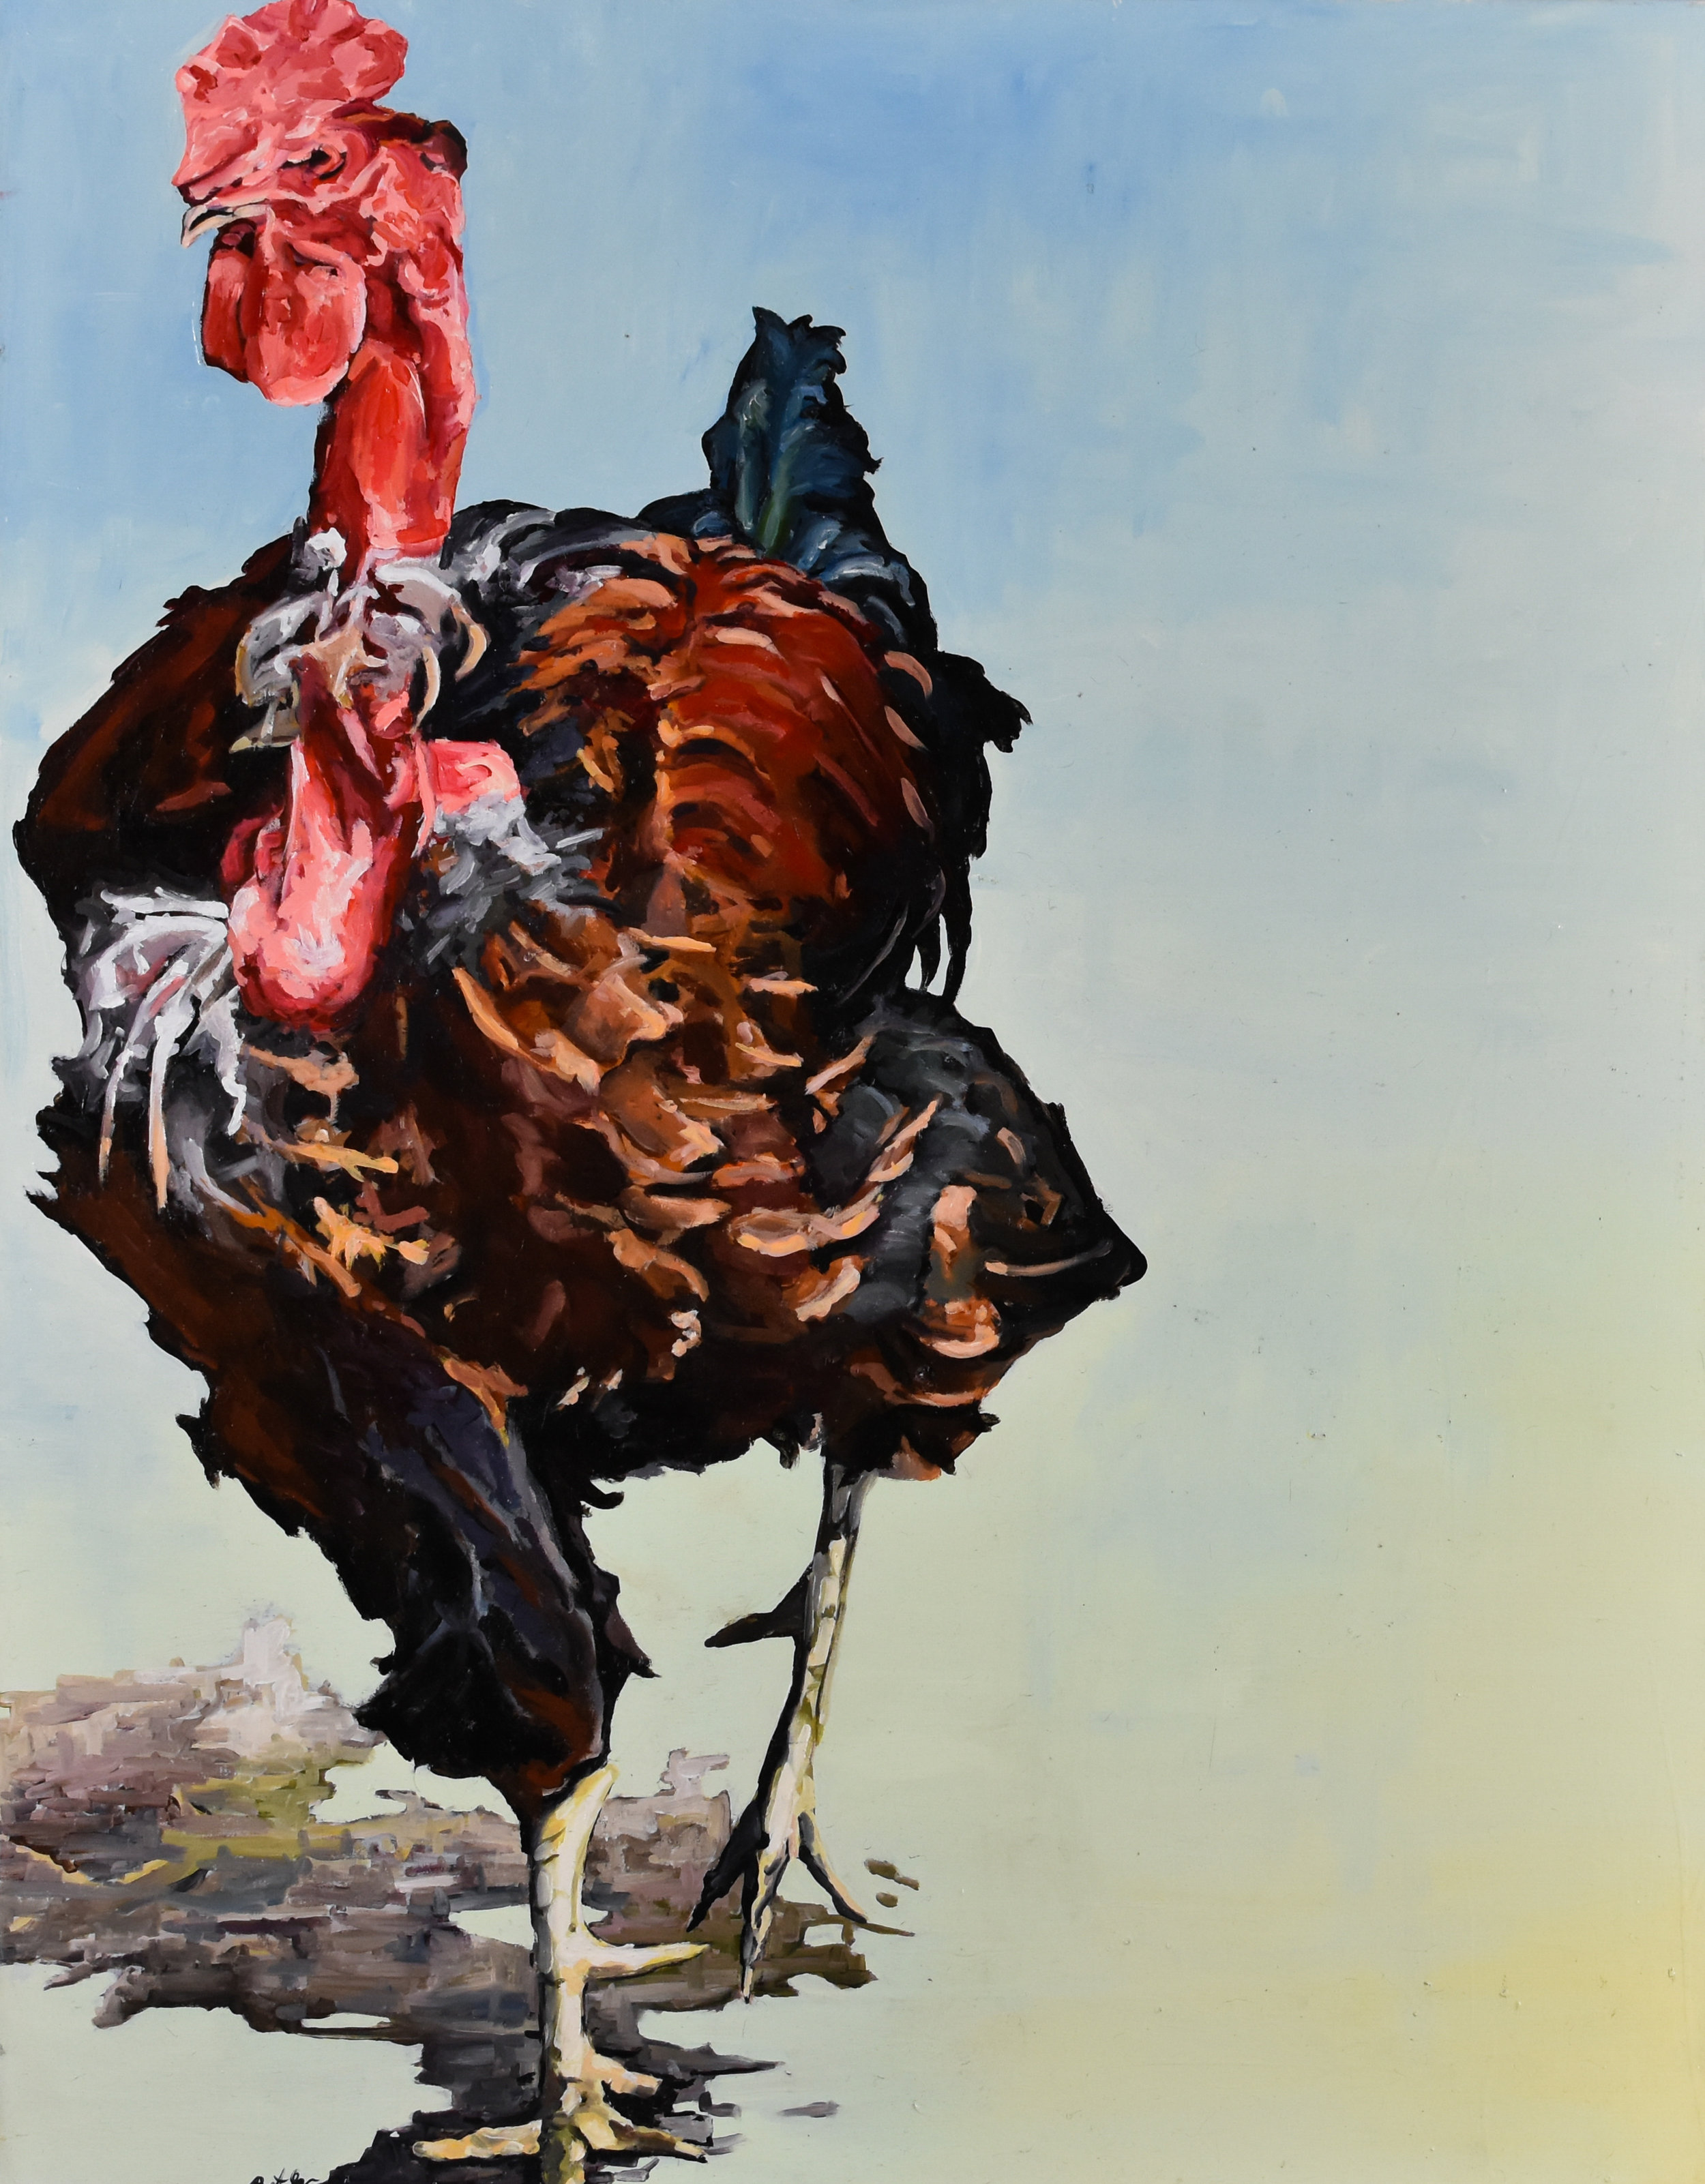 Robert Lococo - http://robertlococo.comOil, watercolor, and encaustic. Birdlife subject in contemporary scenarios. Observed behavior and realtionships. Capturing their personality I see human characteristics, humor and beauty can be seen